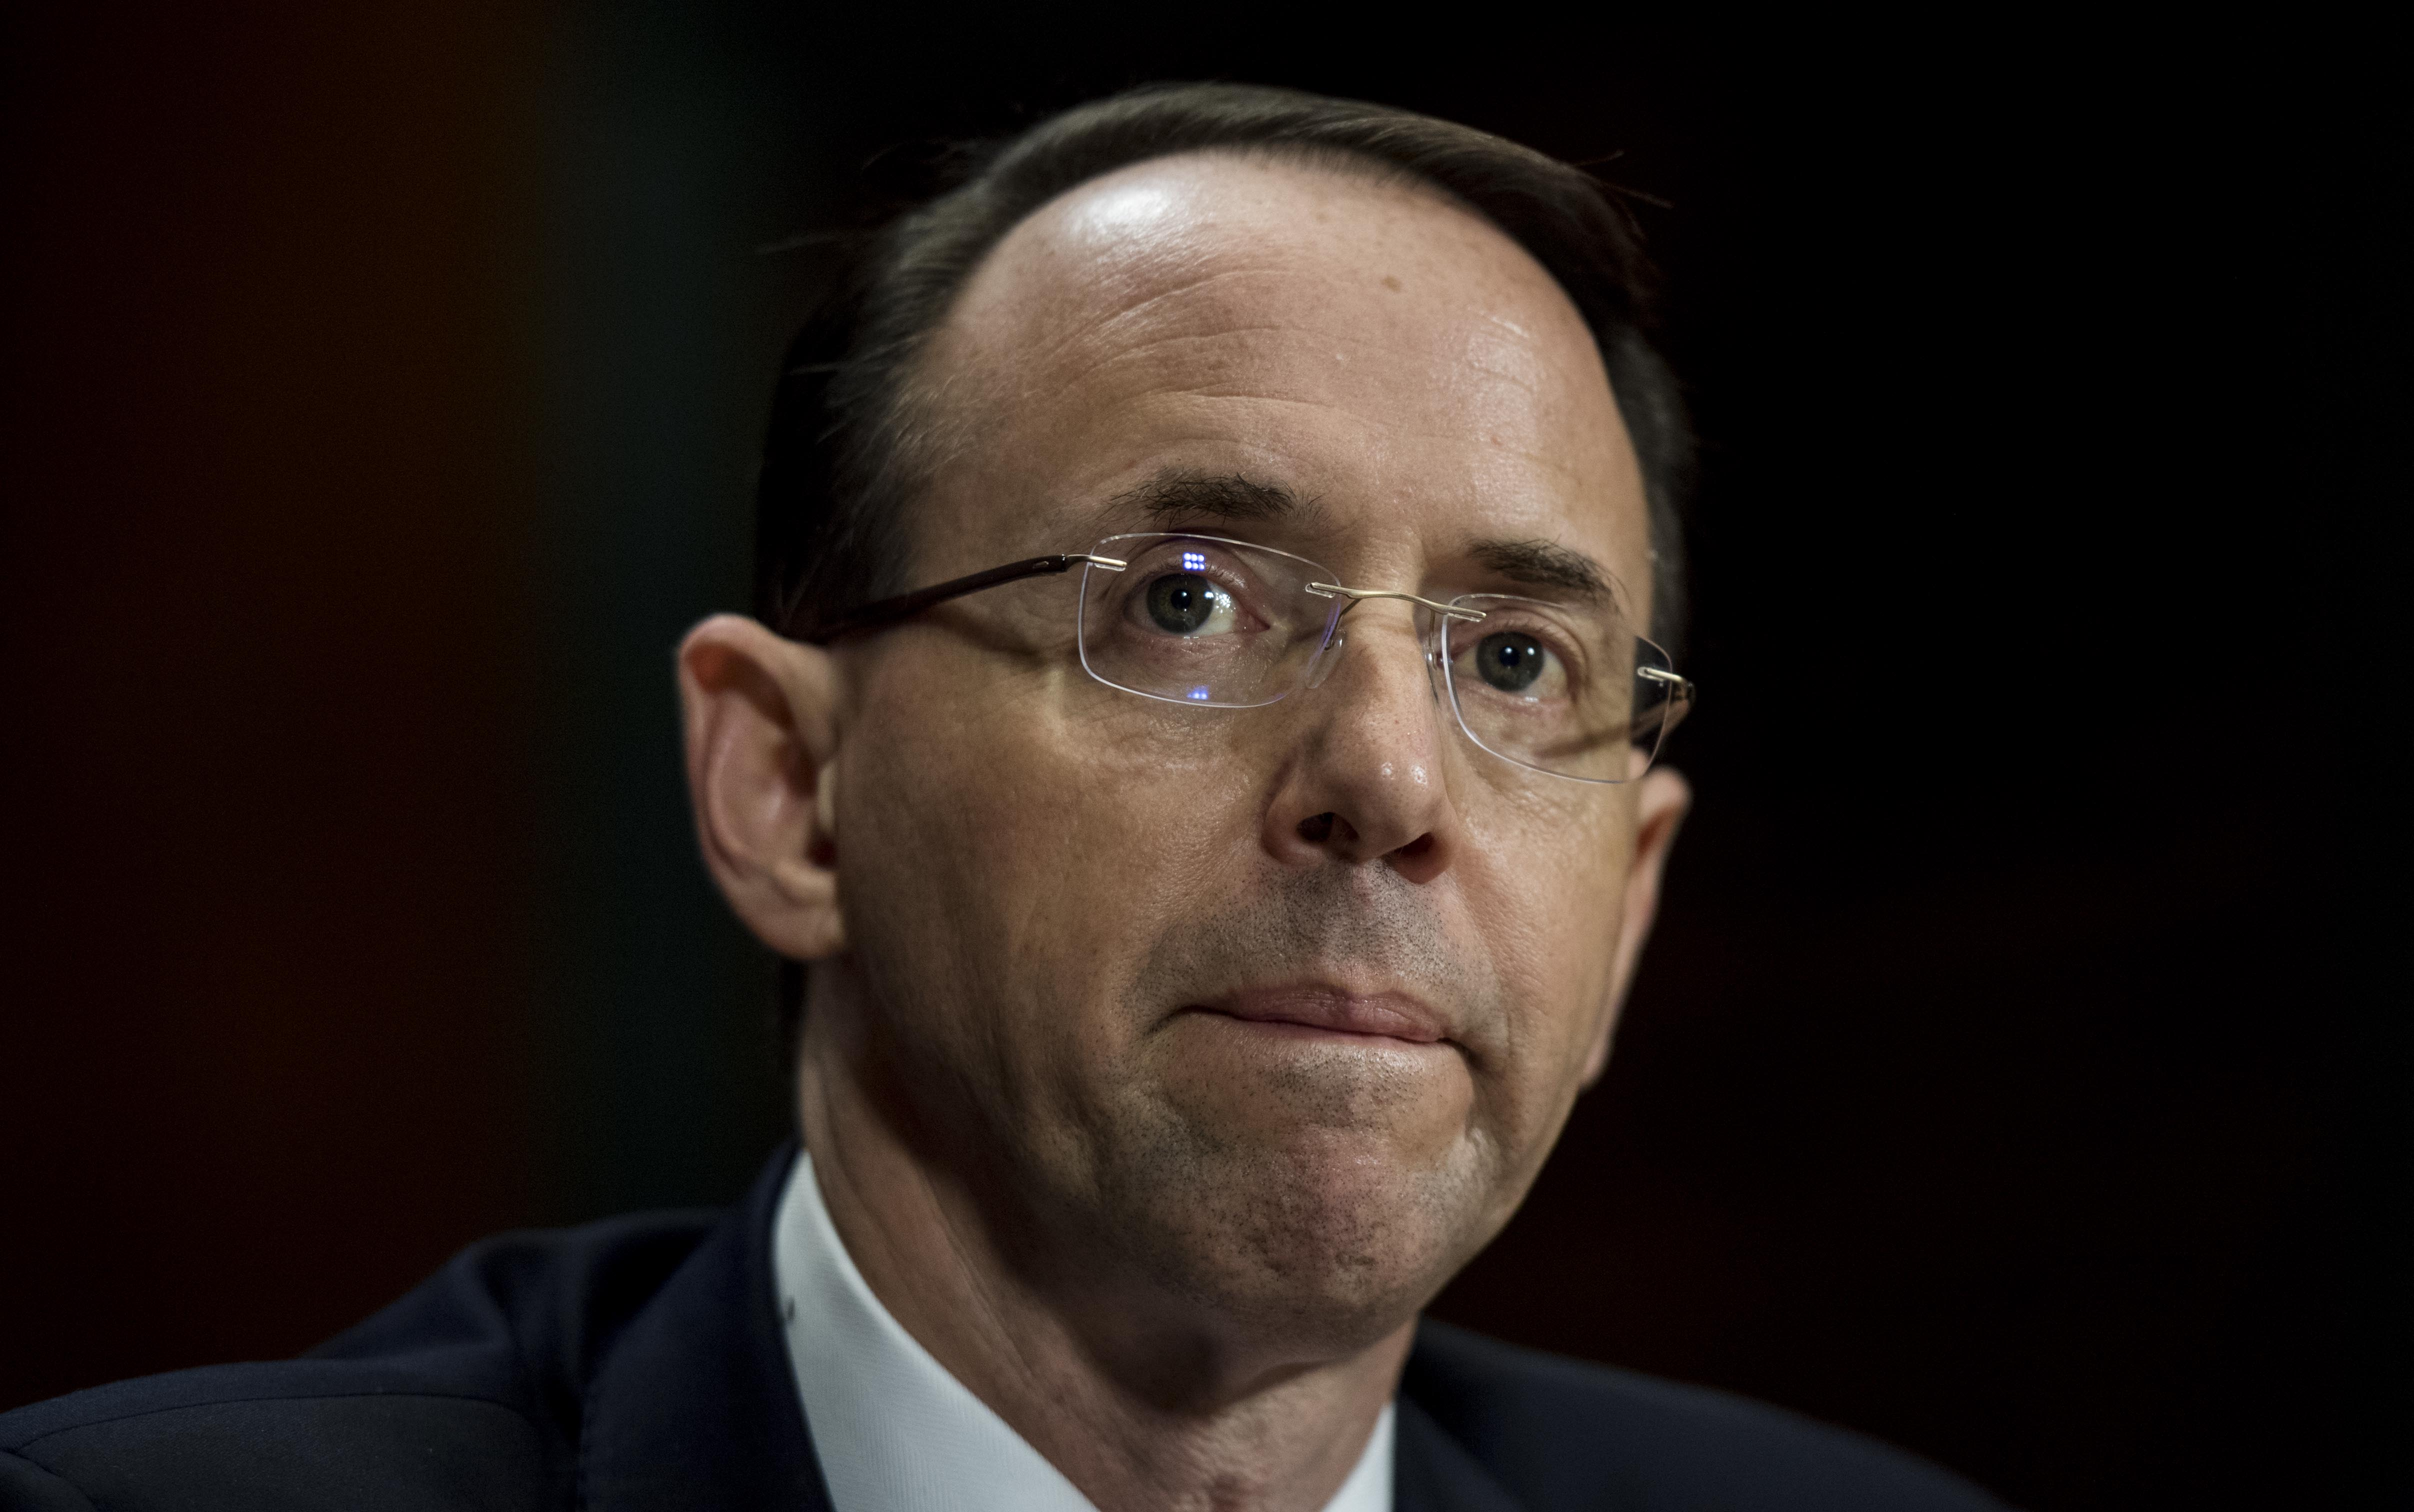 Nominees for Deputy Attorney General, Rod Rosenstein,  and Rachel Brand nominated for Associate Attorney General